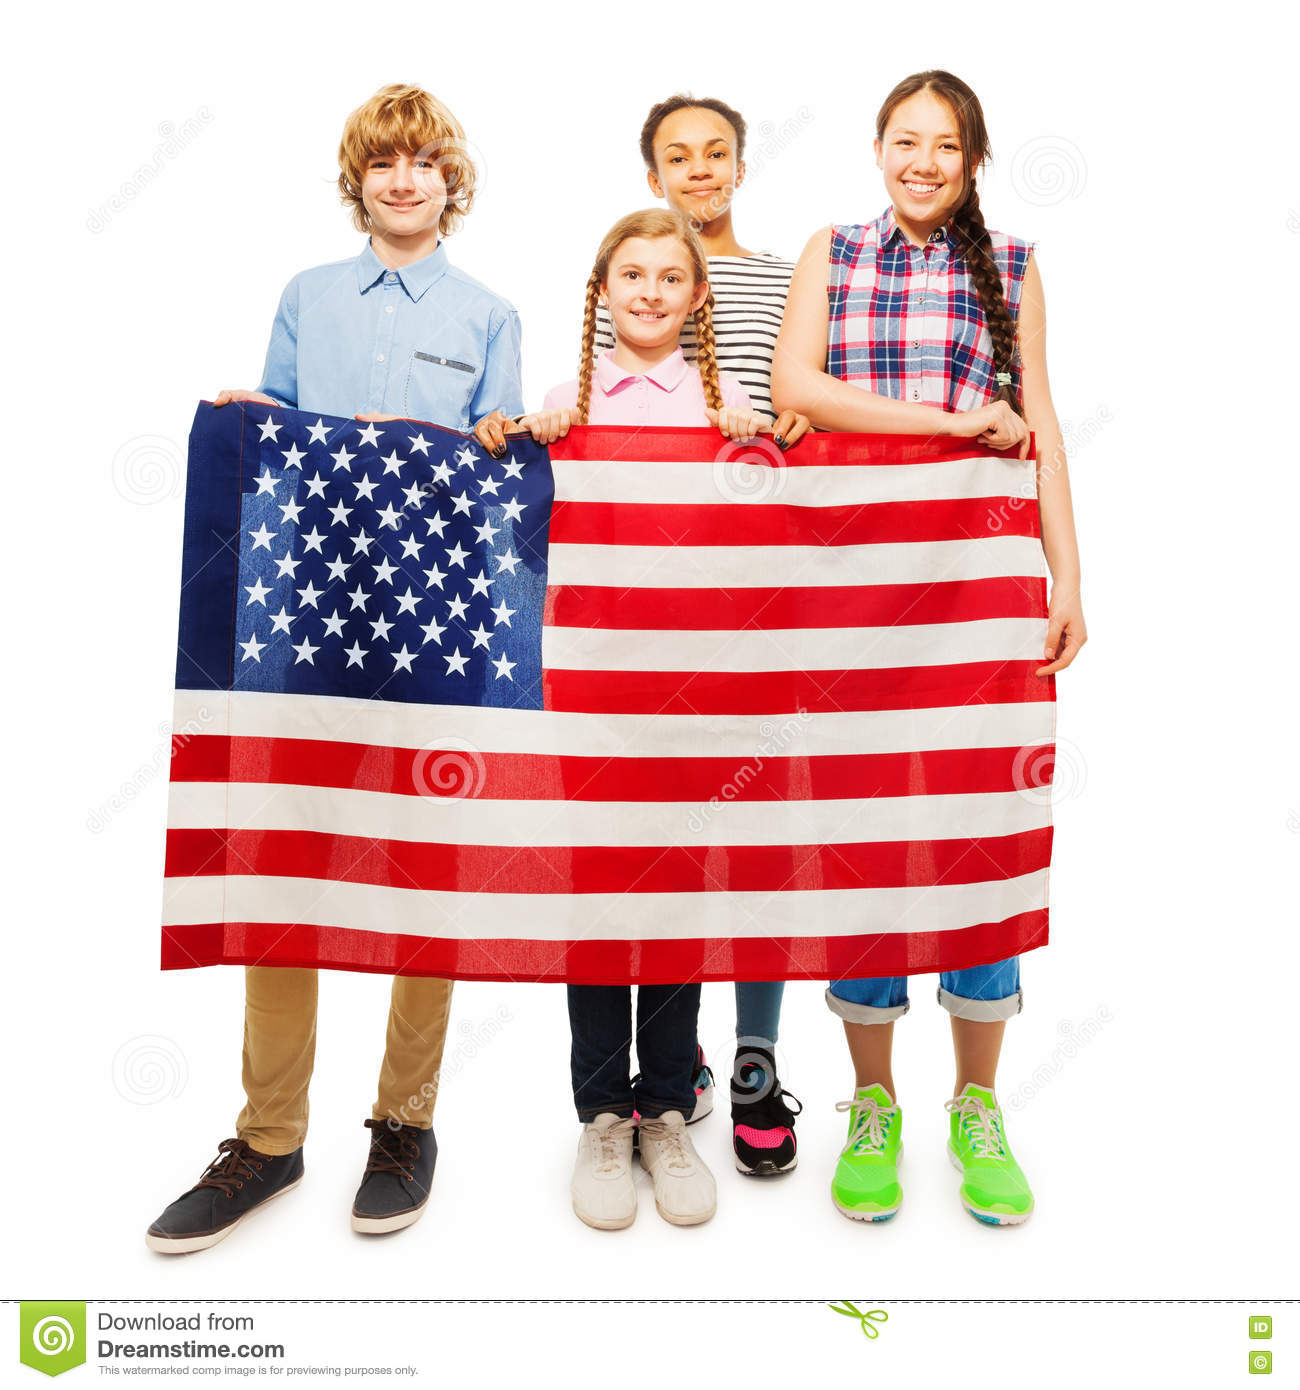 an analysis of the rise patriotism in the united states But what is the basis of america's particular patriotism and civic virtues why have millions loved this country enough to fight and die for its preservation  so what about the united states .